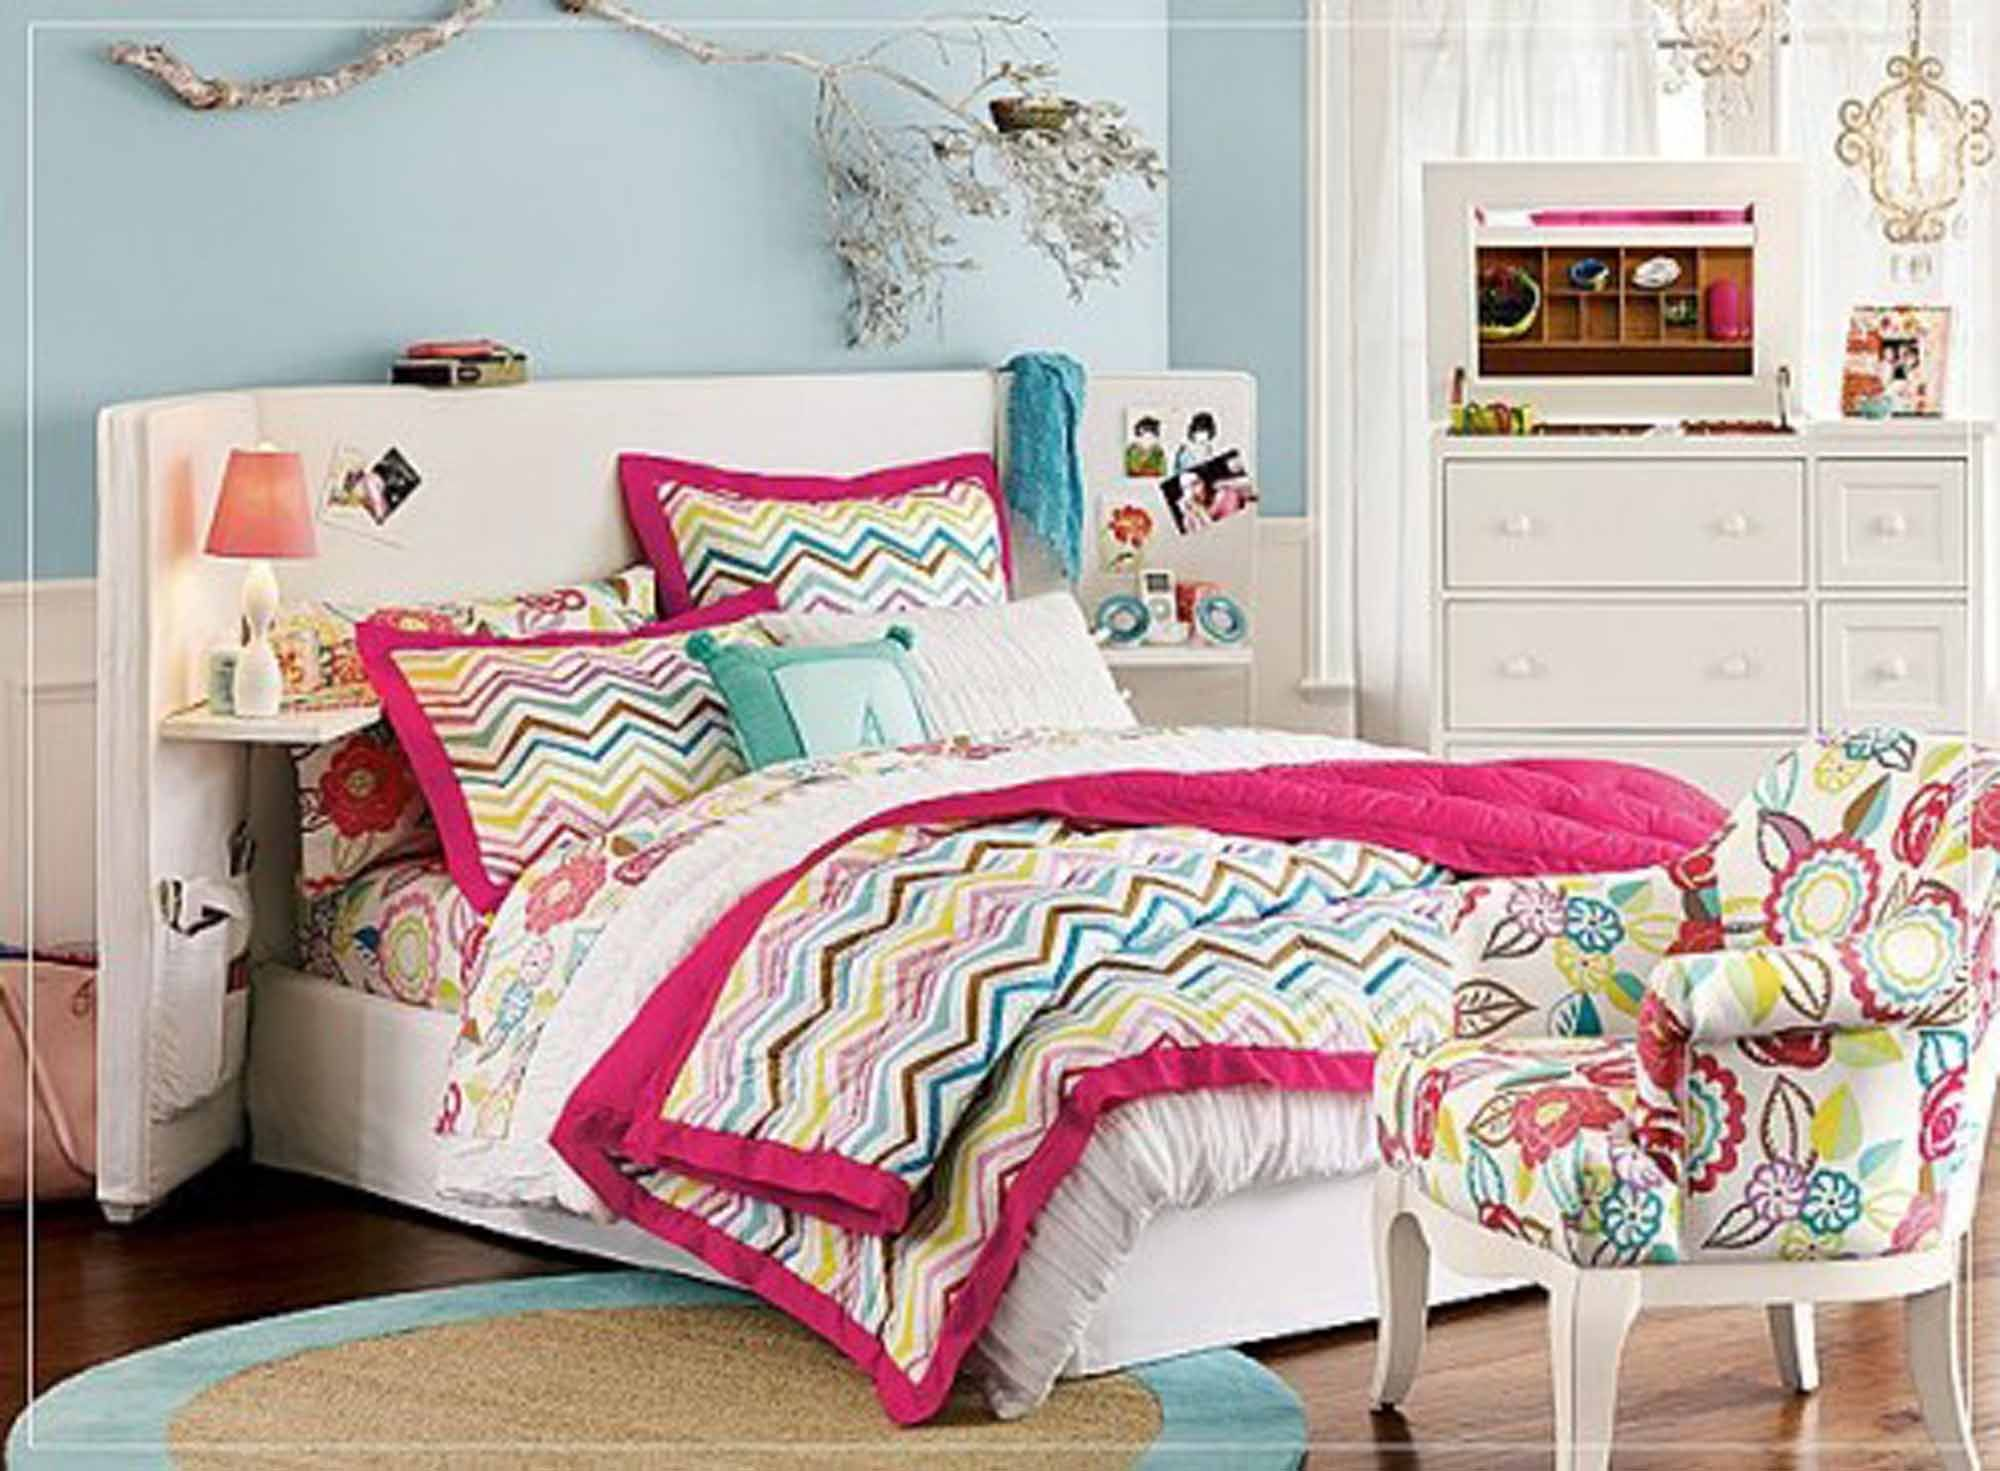 Teenage Girl Bedroom 110 best quartos de adolescentes / teens bedrooms images on